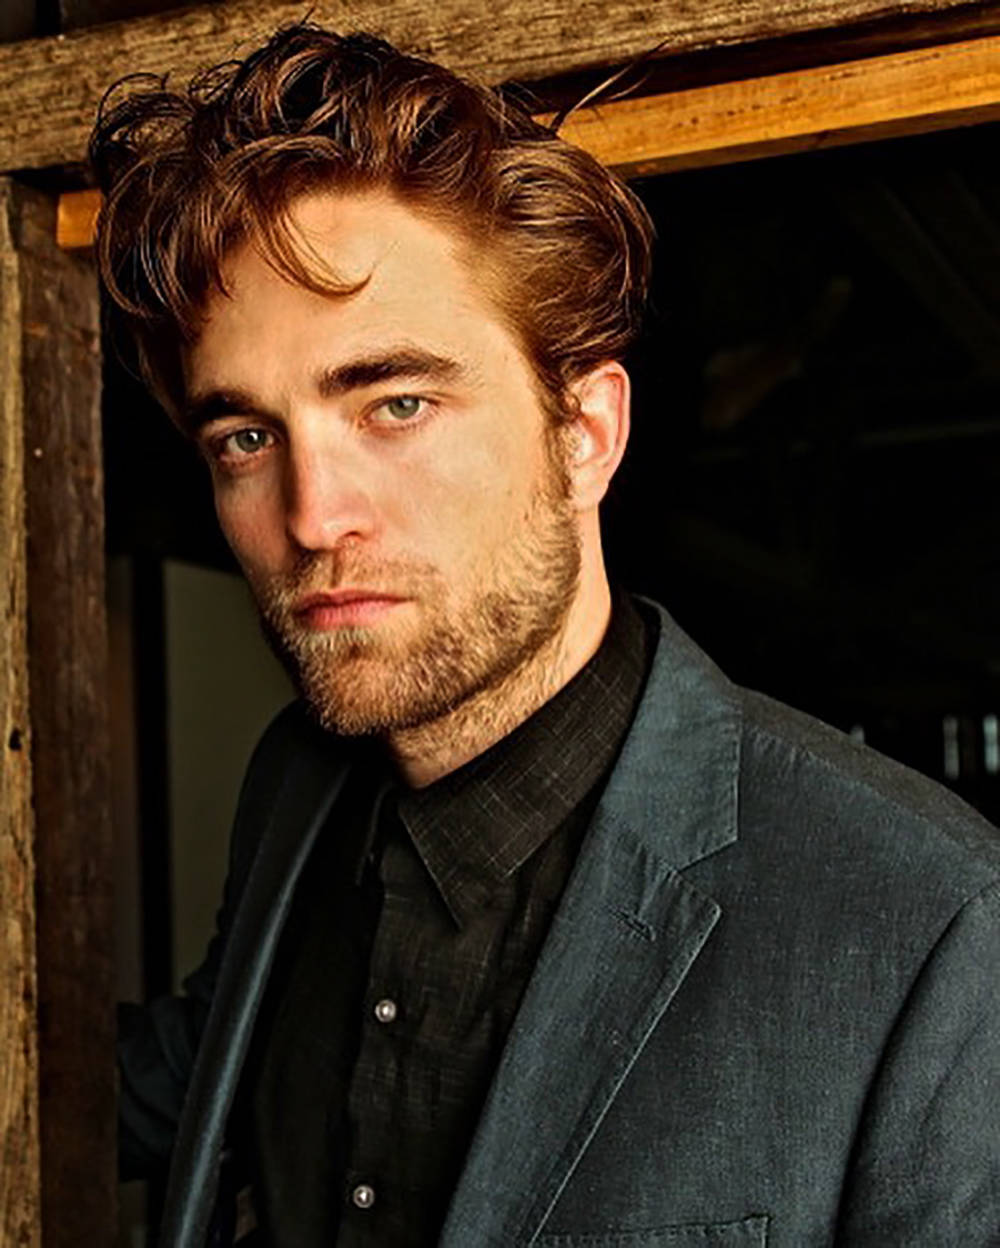 'The Batman' production halts as lead actor Robert Pattinson tests positive for Covid-19